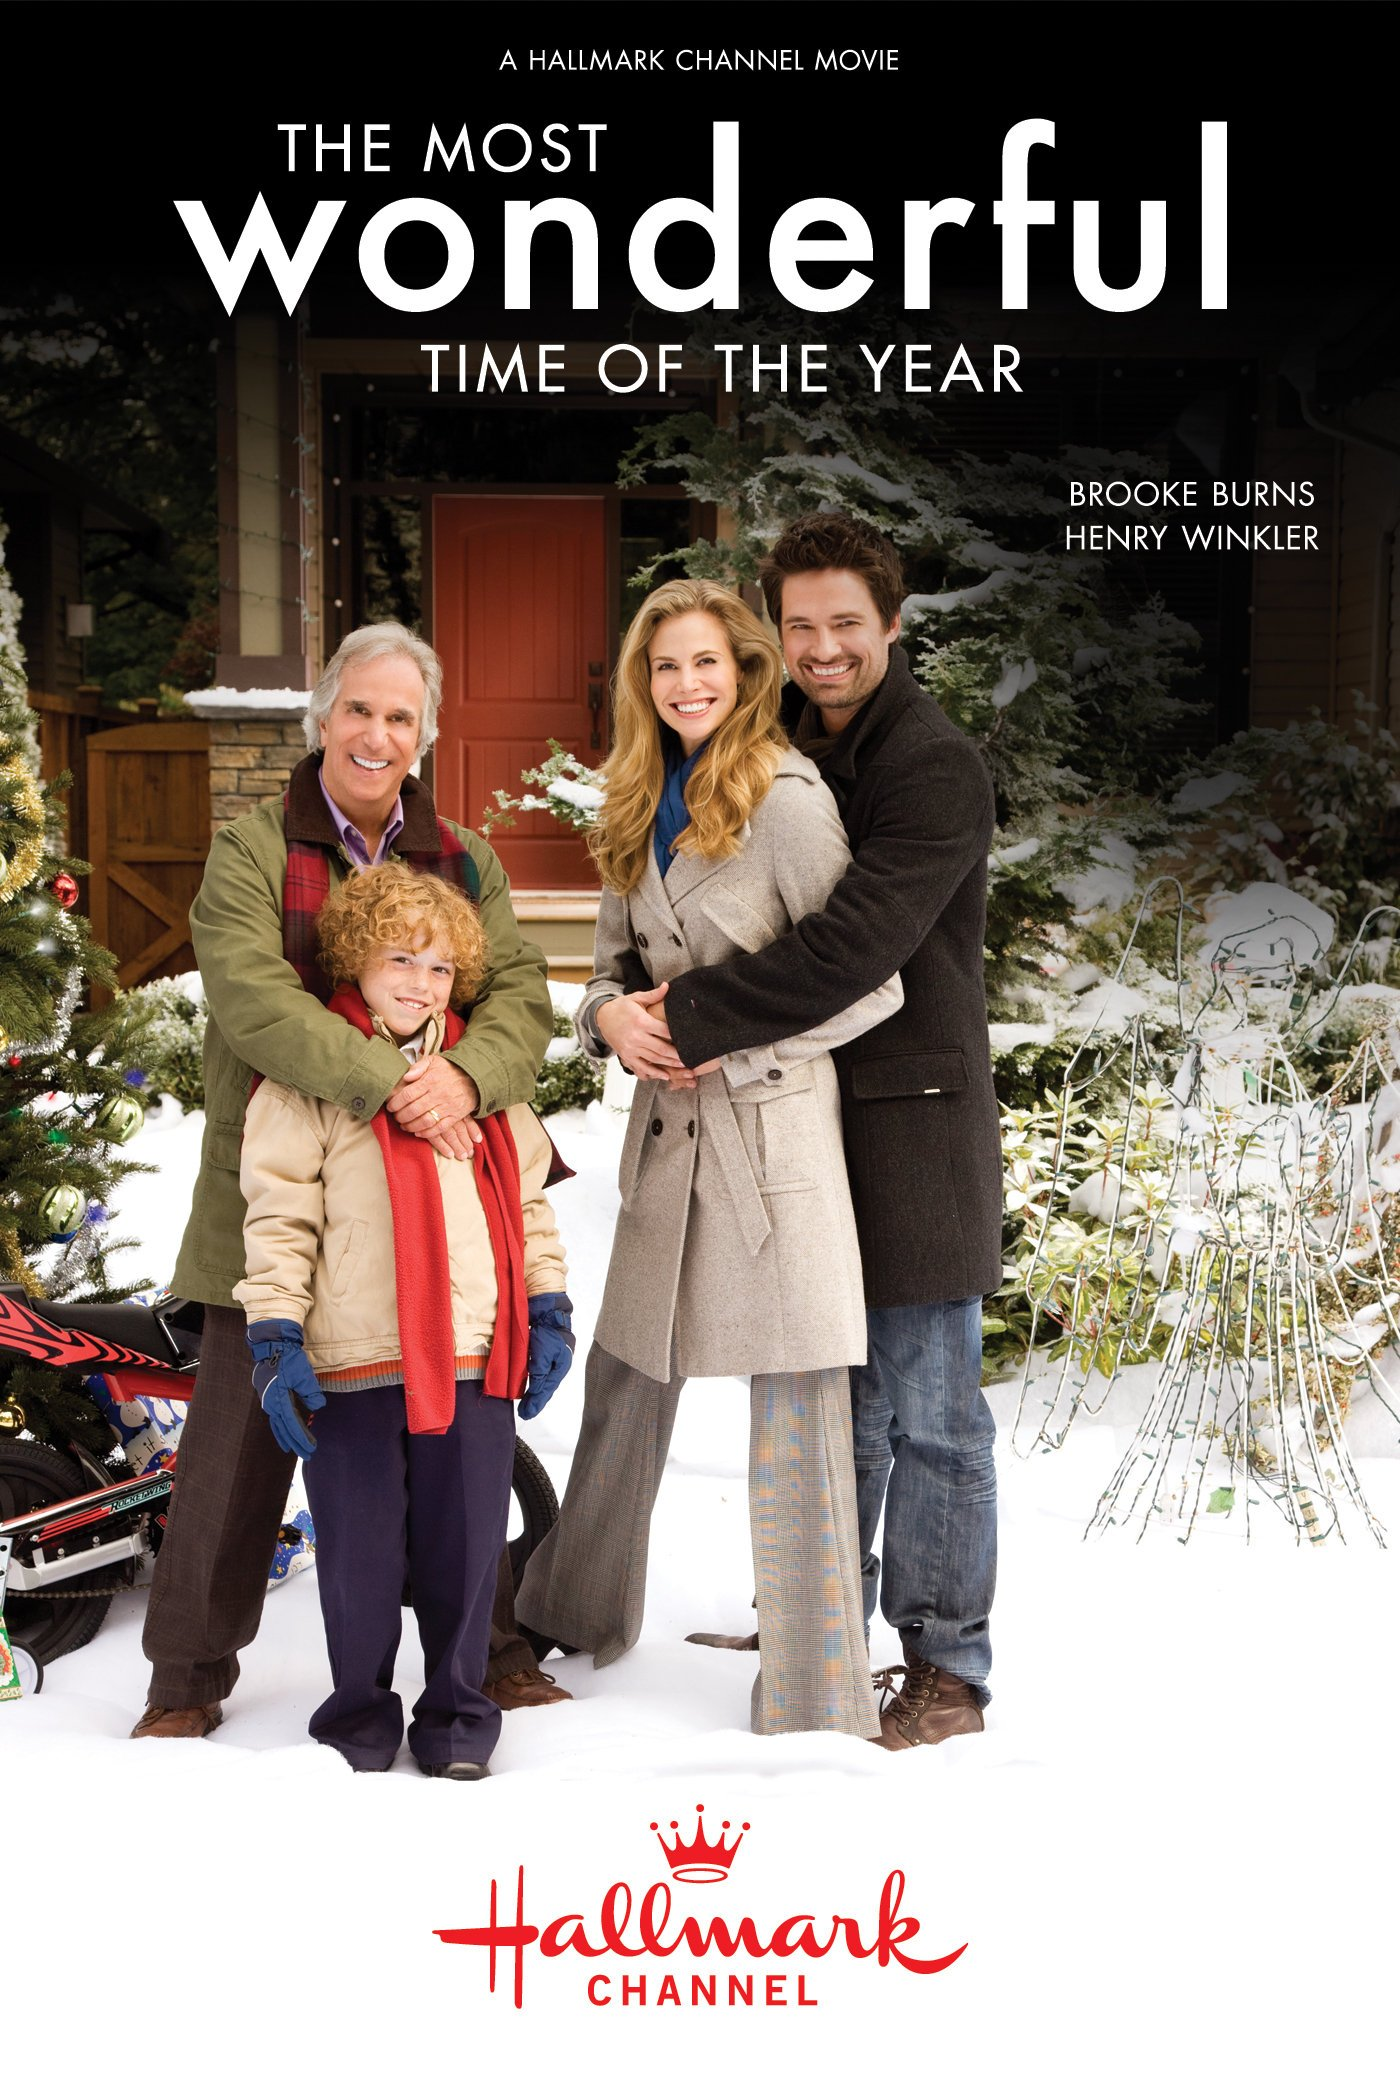 amazoncom the most wonderful time of the year henry winkler vivendi amazon digital services llc - Hbo Go Christmas Movies